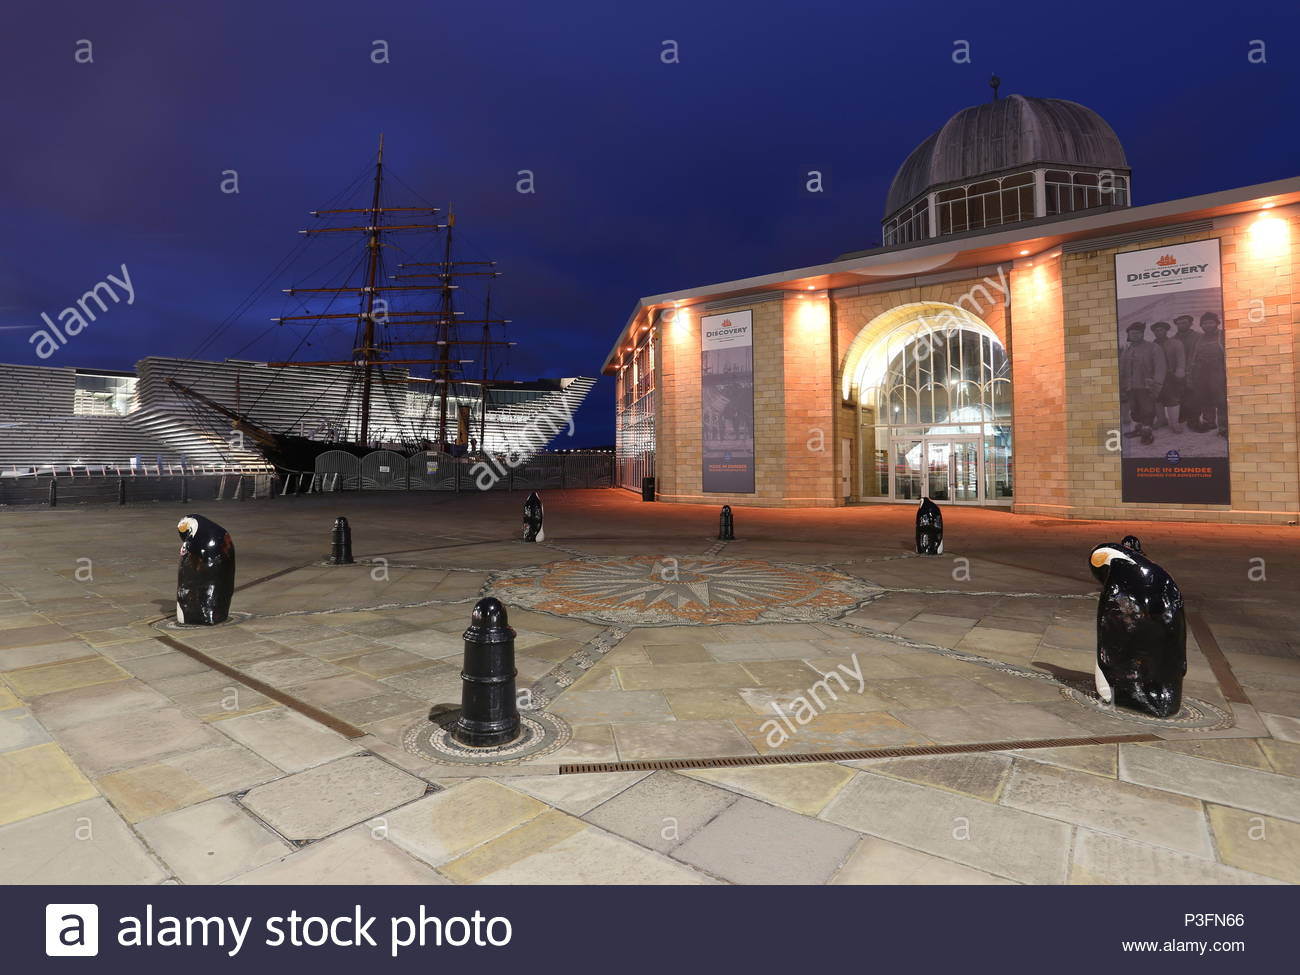 Discovery Point Visitors Centre, RRS Discovery and V&A Design Museum by night Dundee Scotland  June 2018 - Stock Image